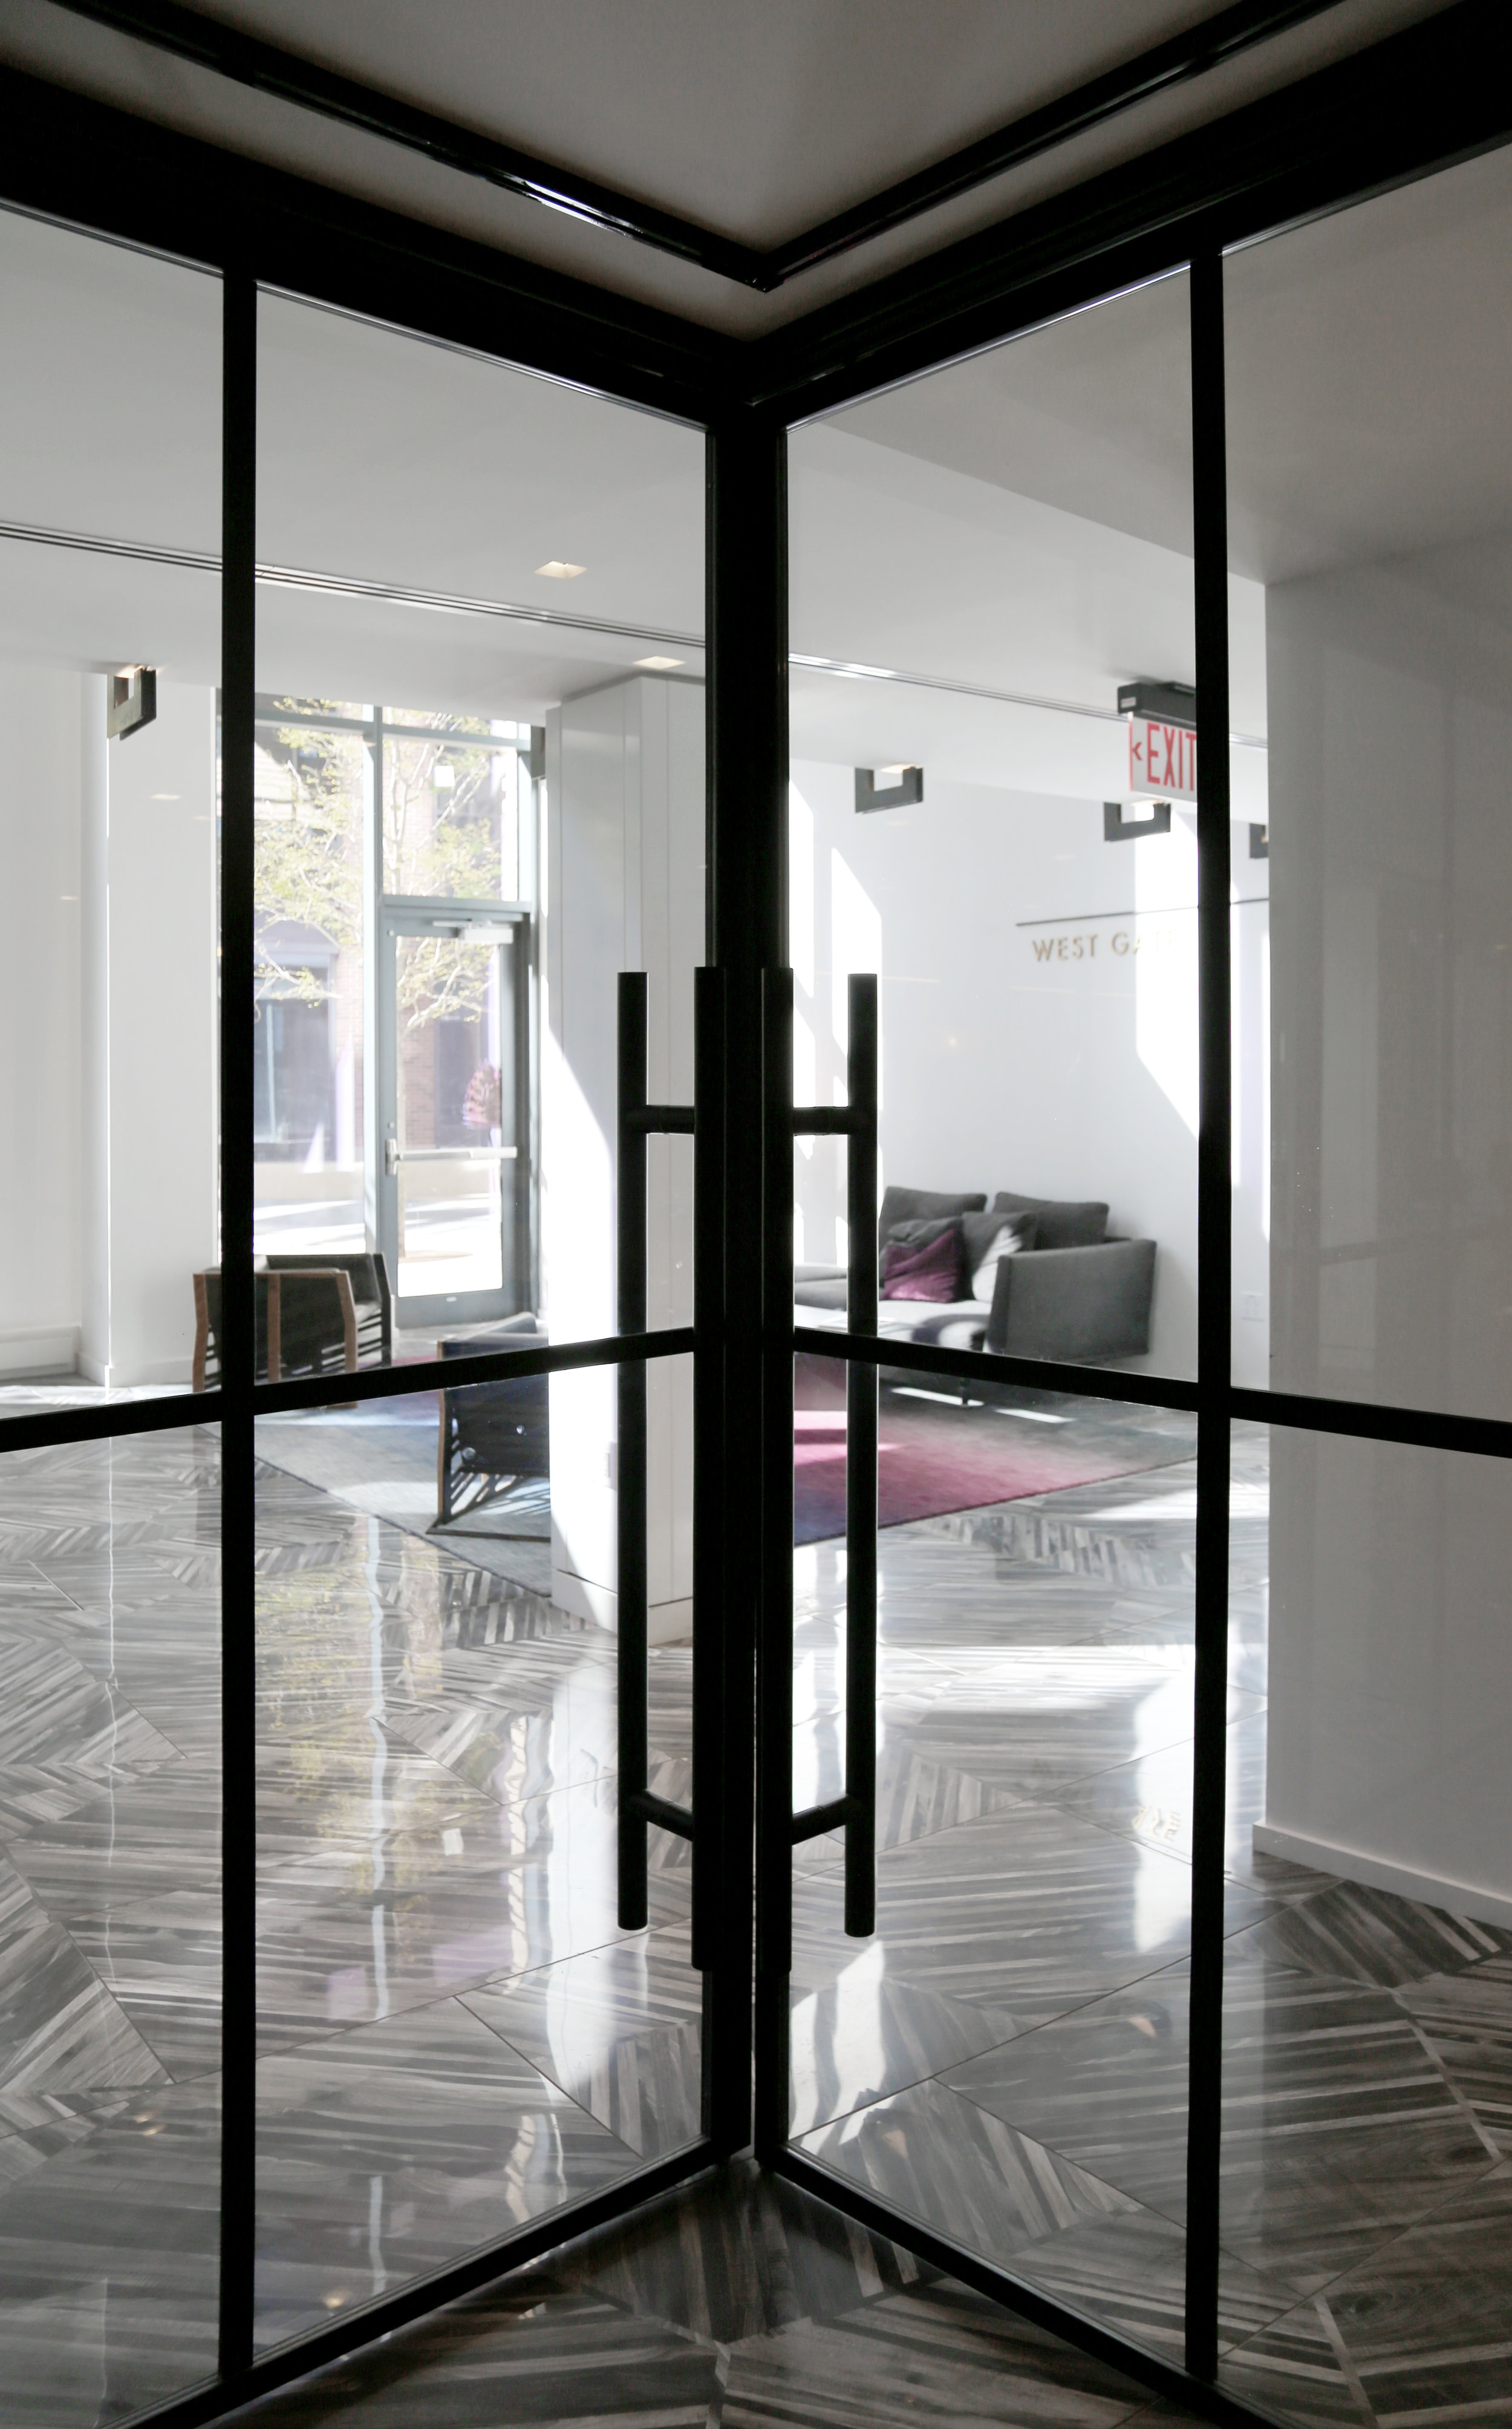 Perpendicular Corner Sliding Doors Telescoping Wall System - Spaceworks AI.jpg